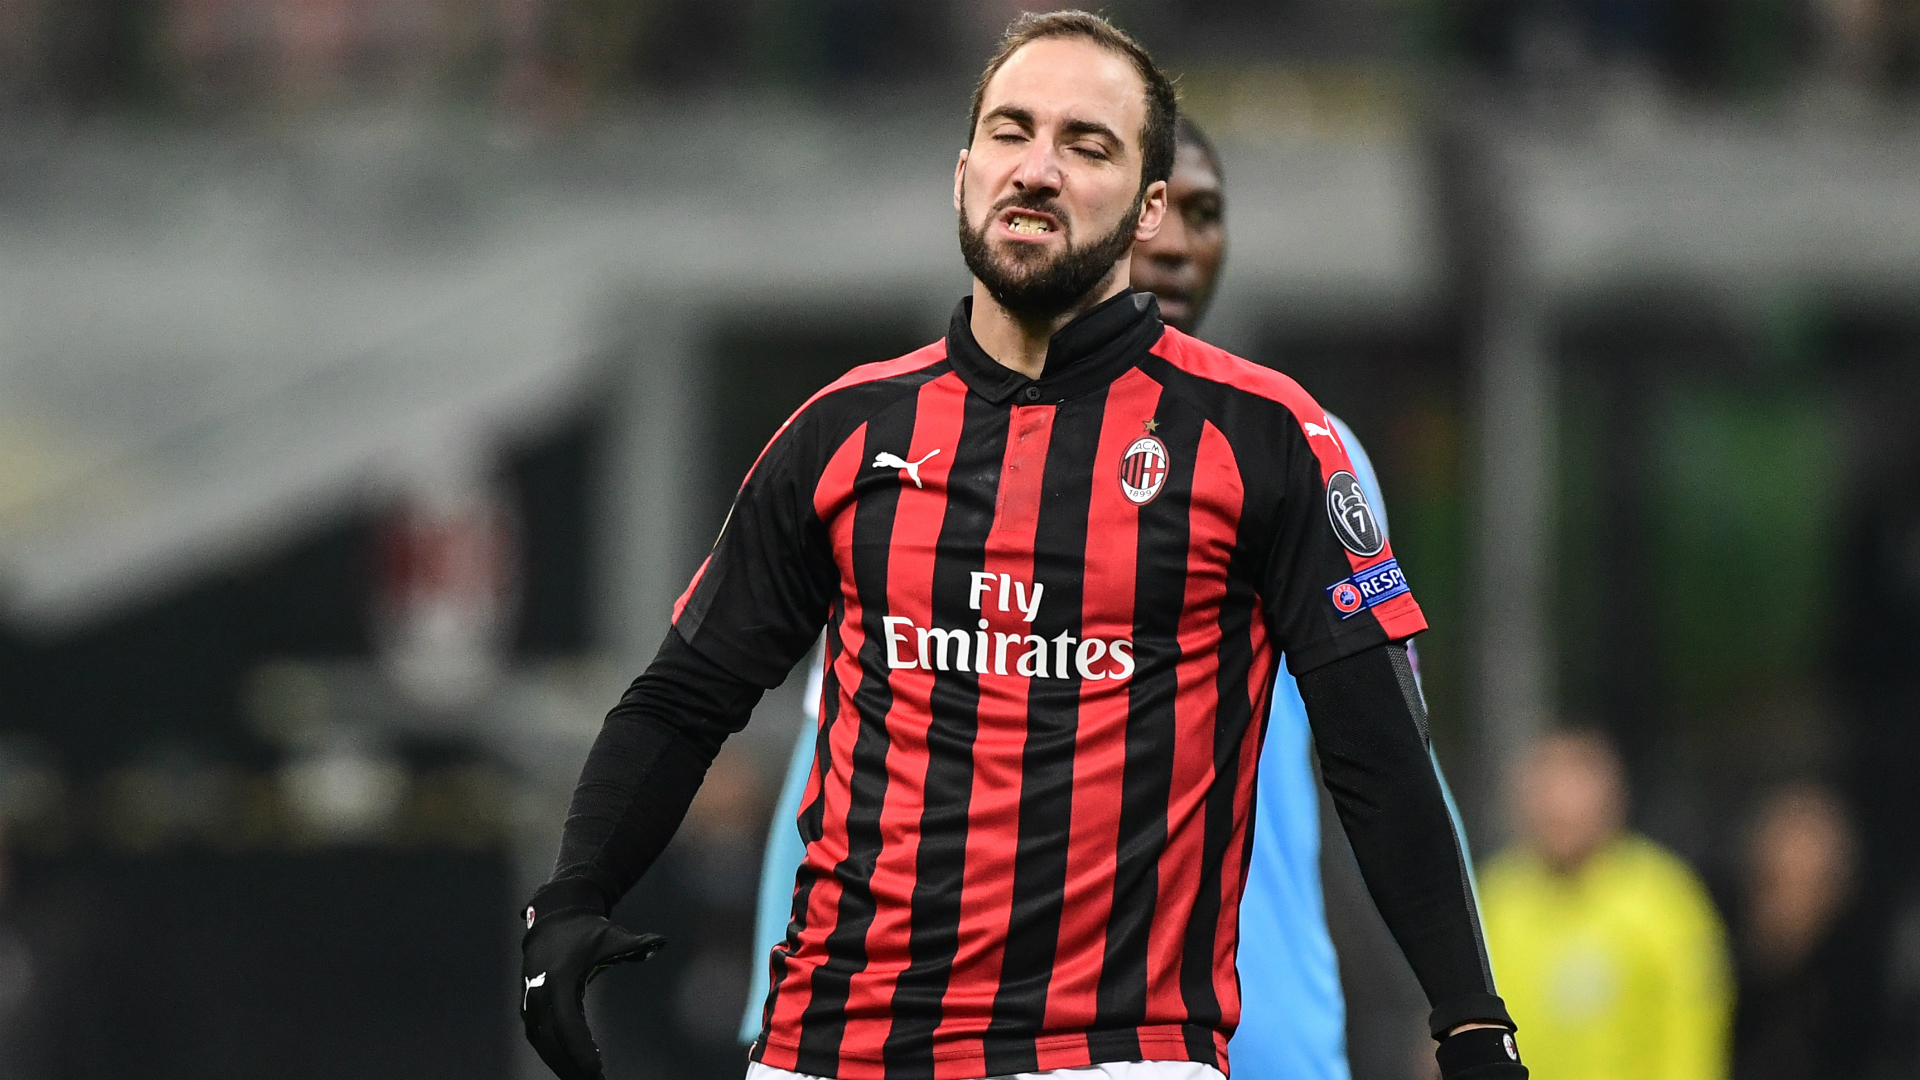 Chelsea target Gonzalo Higuain has great history with Maurizio Sarri